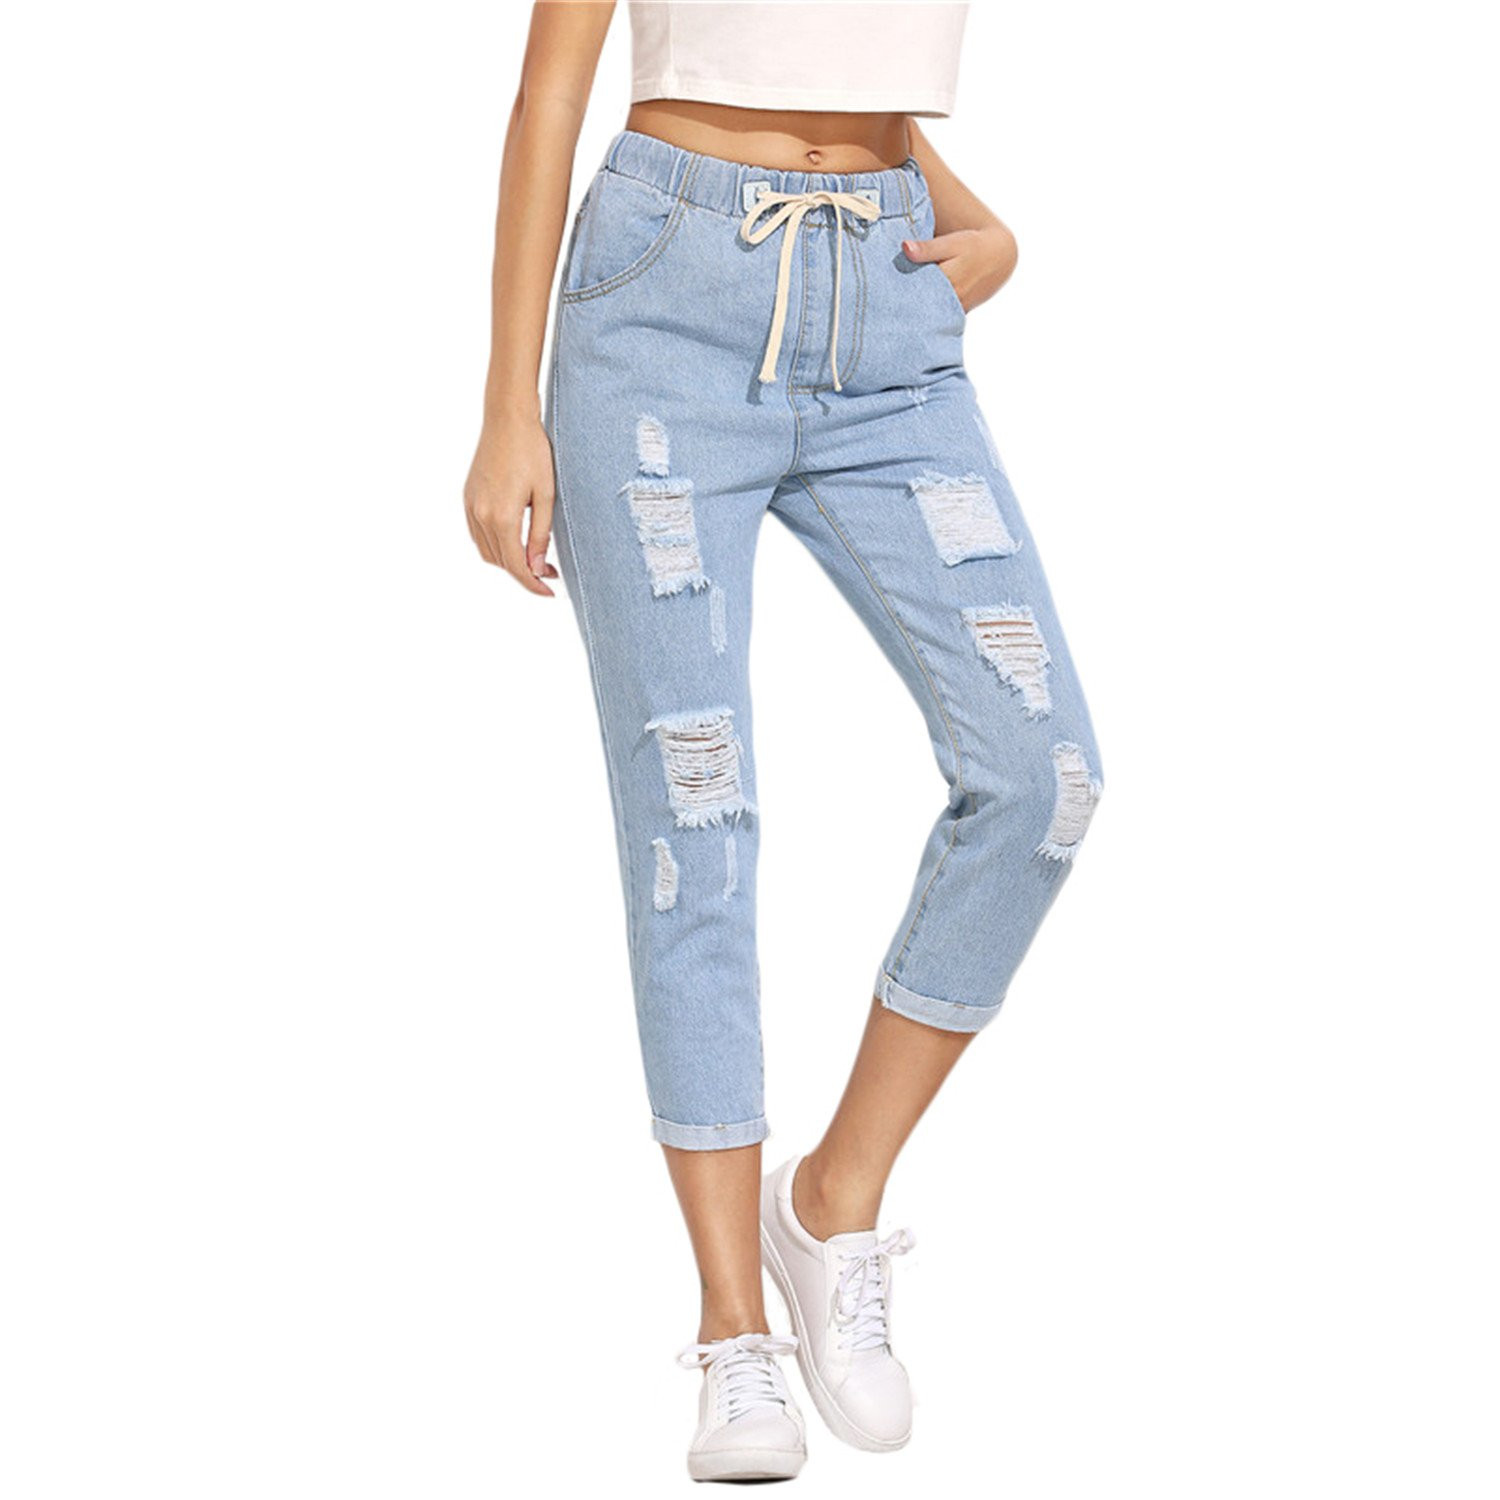 Miki Da Women Summer Pants Casual Trousers For Ladies Blue Ripped Mid Waist Drawstring Skinny Denim Calf Length Jeans